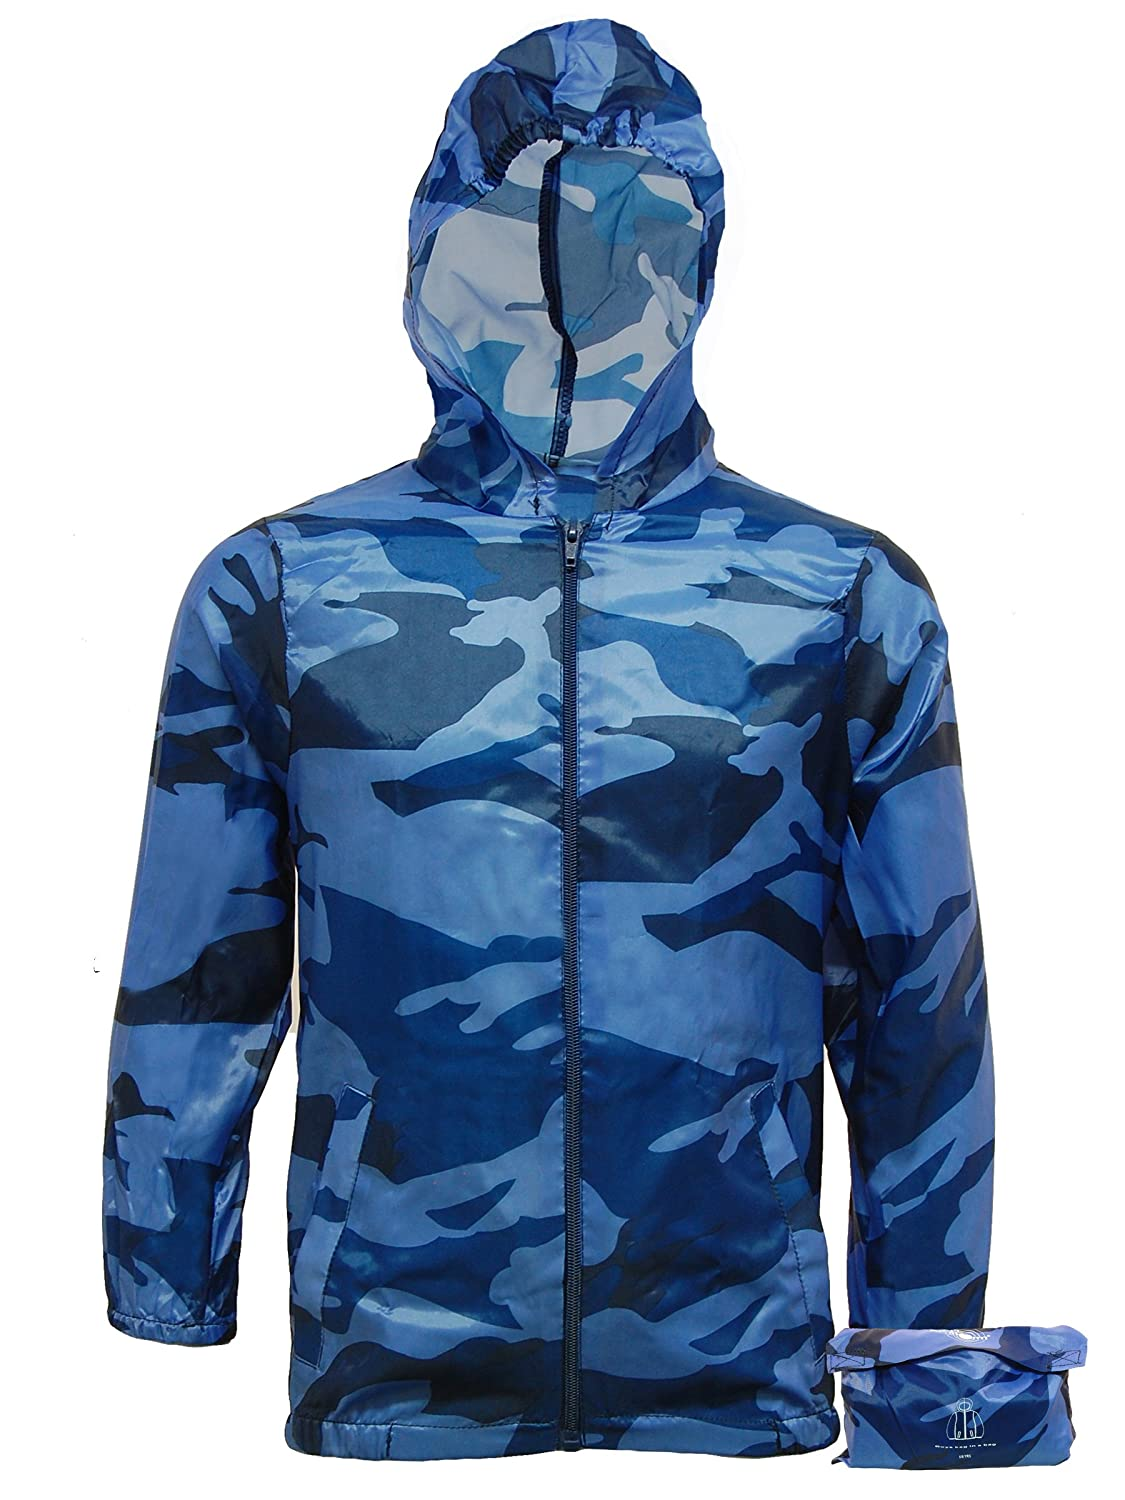 Boys Lightweight Camo Rain Jacket Kagool | Kids Cagoule - Cag in a ...